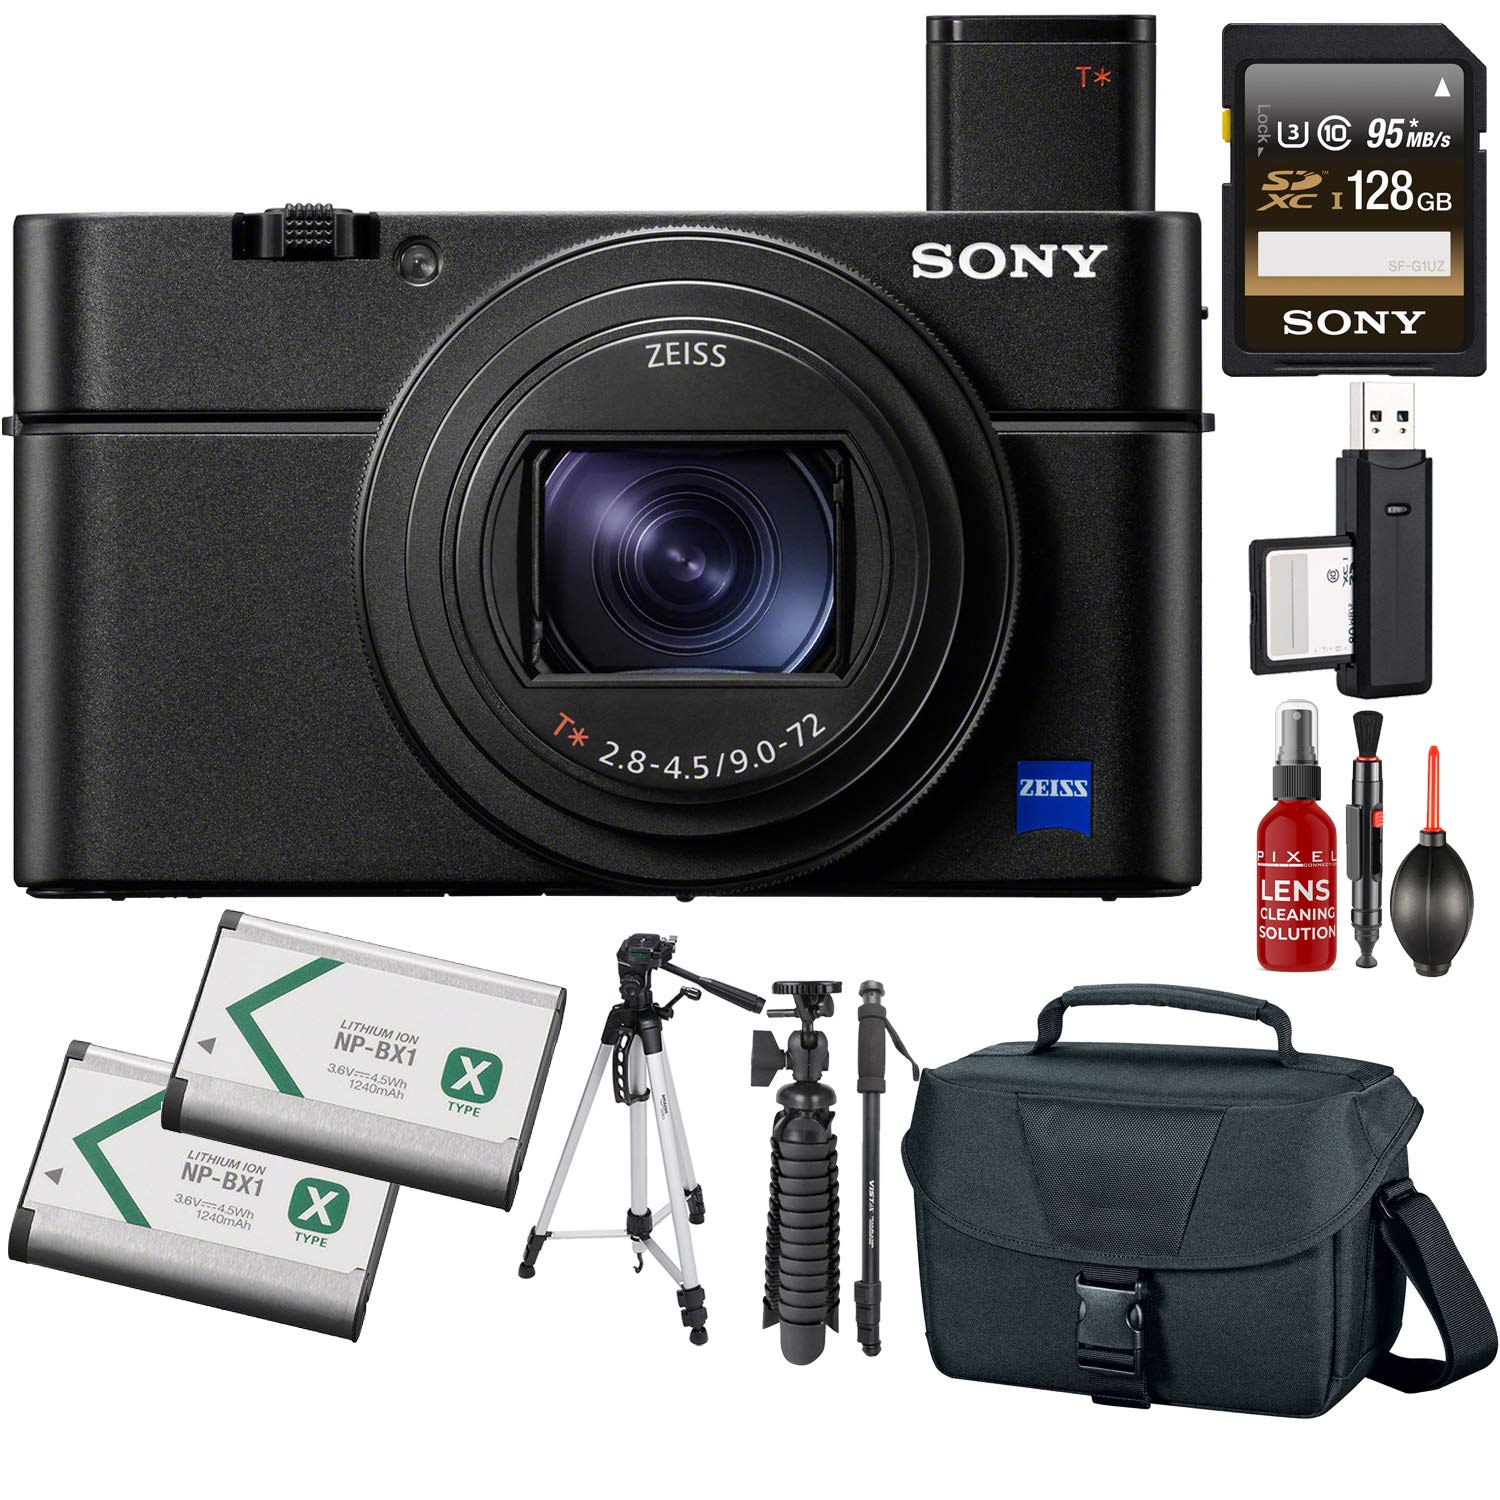 Sony Cyber-Shot DSC-RX100 VII Digital Camera + 128GB Memory Card + Tripod + Carrying Case + Monopod + Extra Battery by Sony